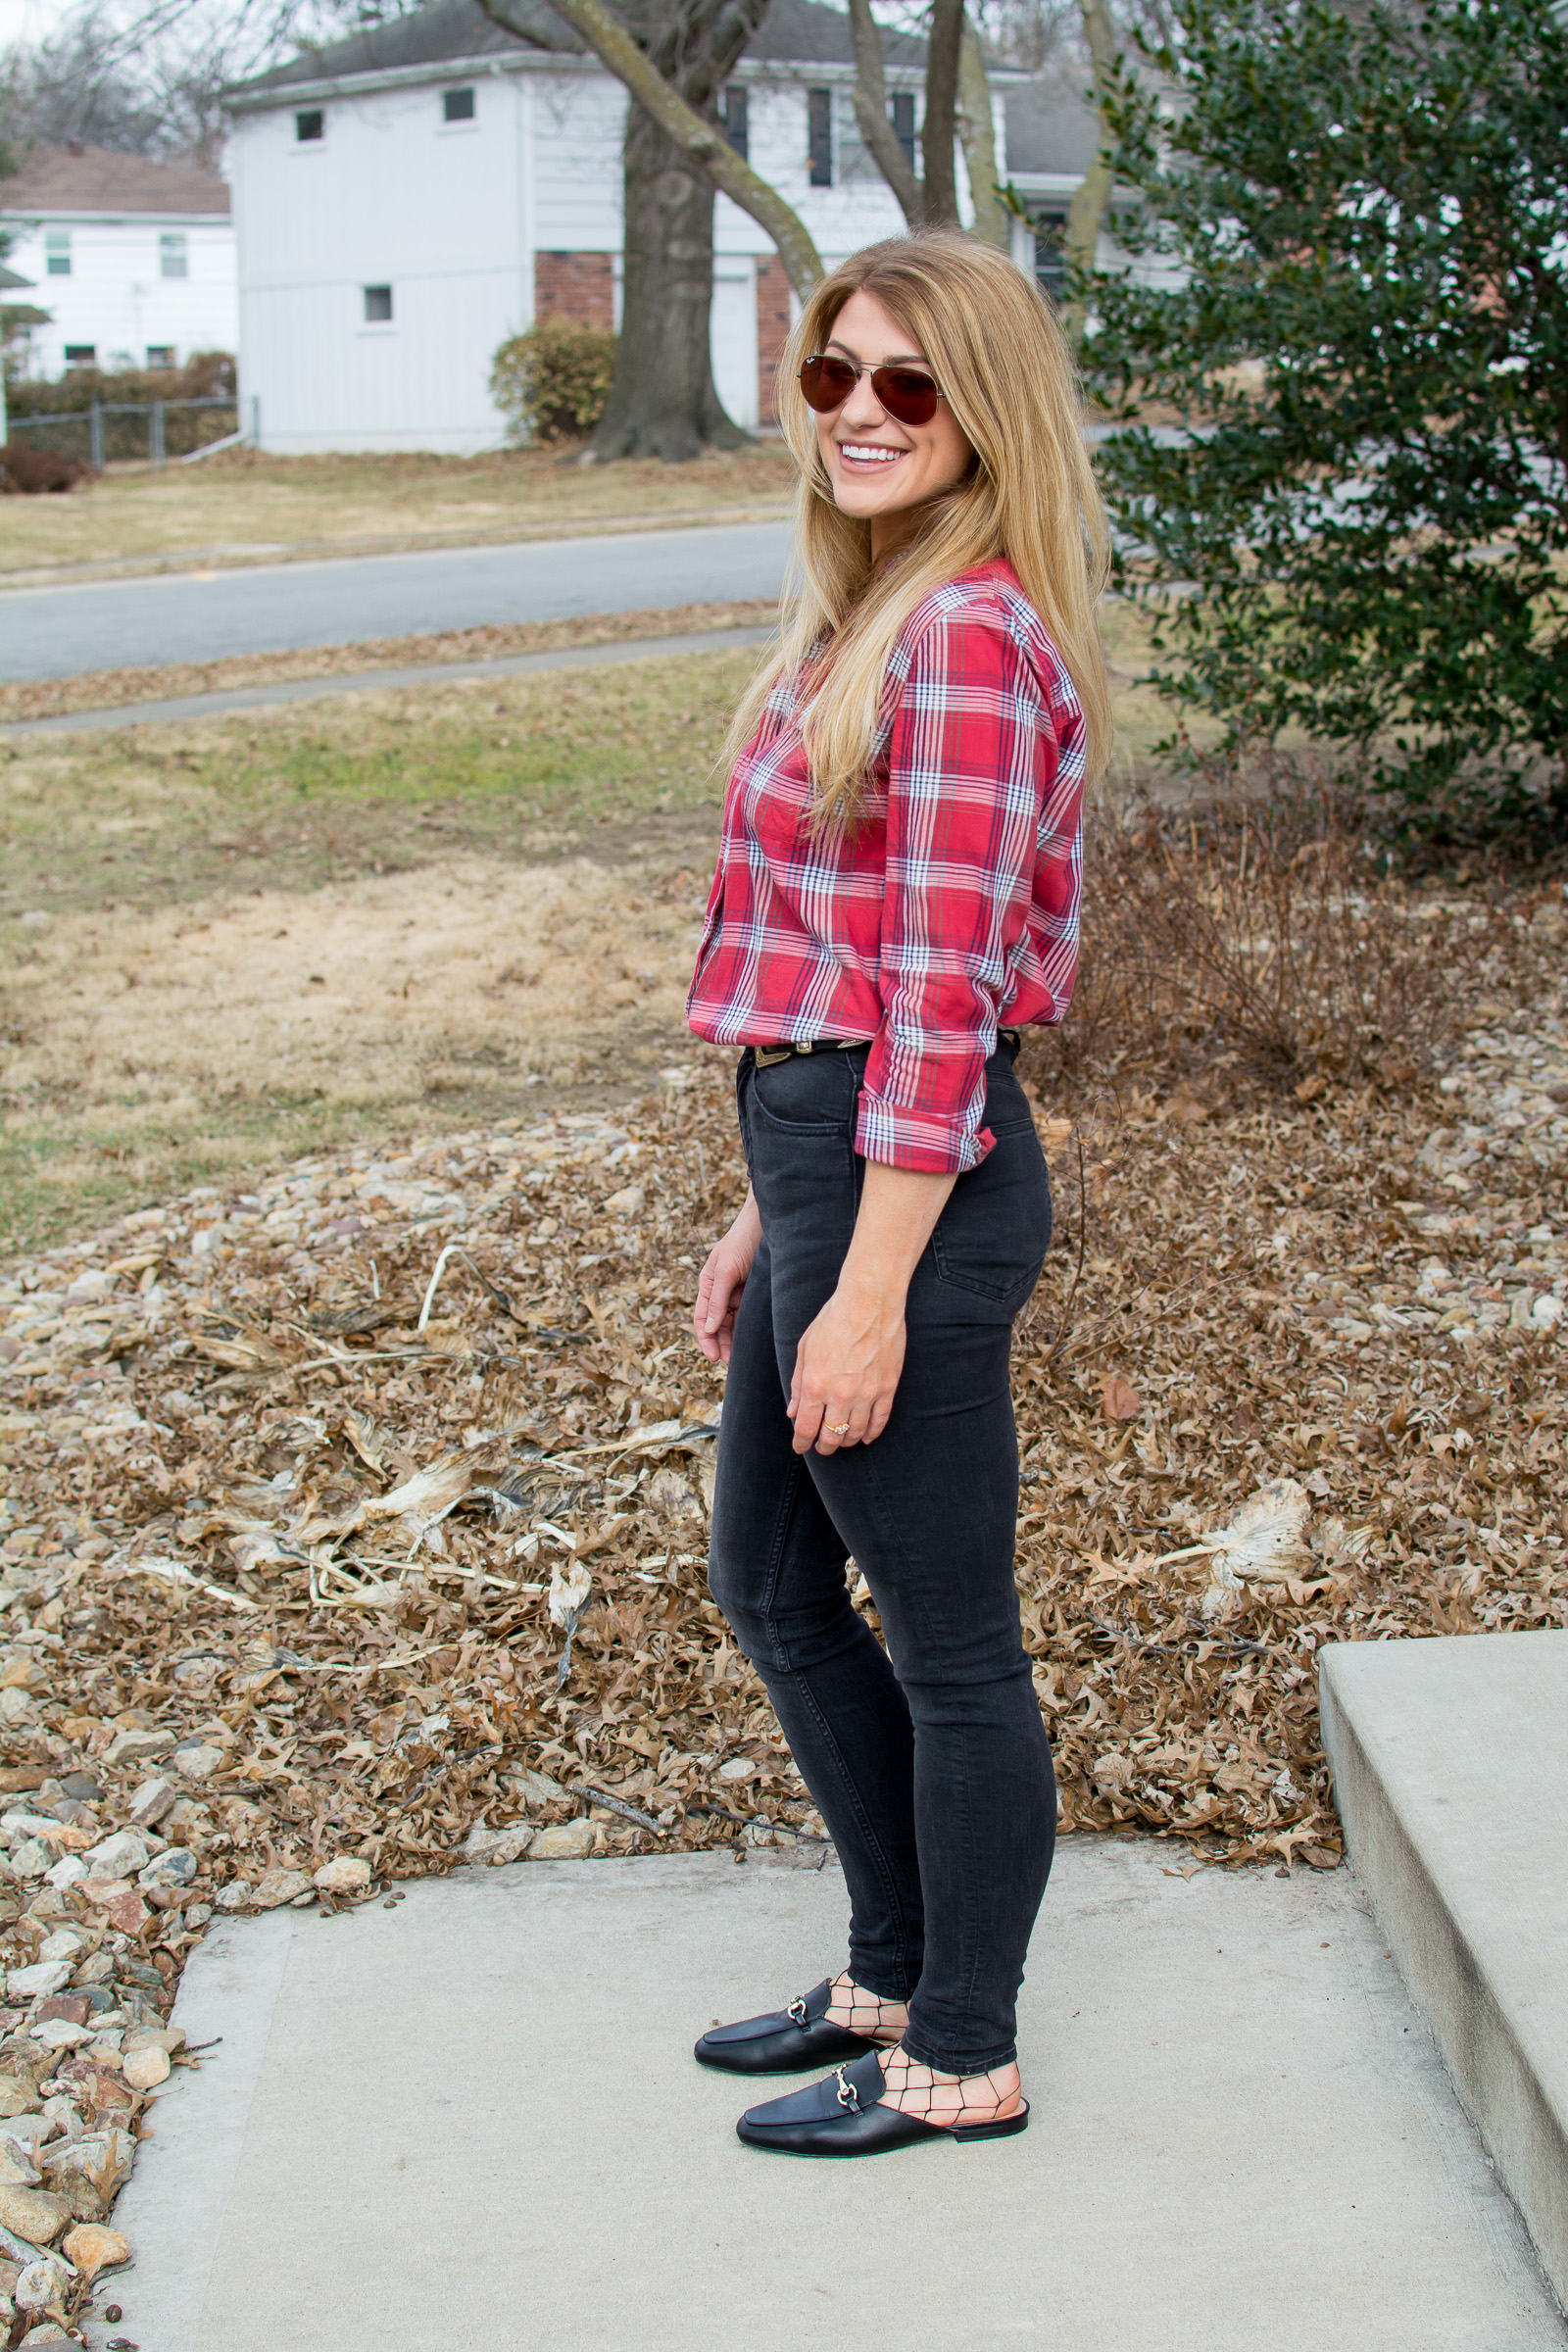 Ashley from LSR in a red Madewell shirt, black jeans, loafer mules, and fishnets